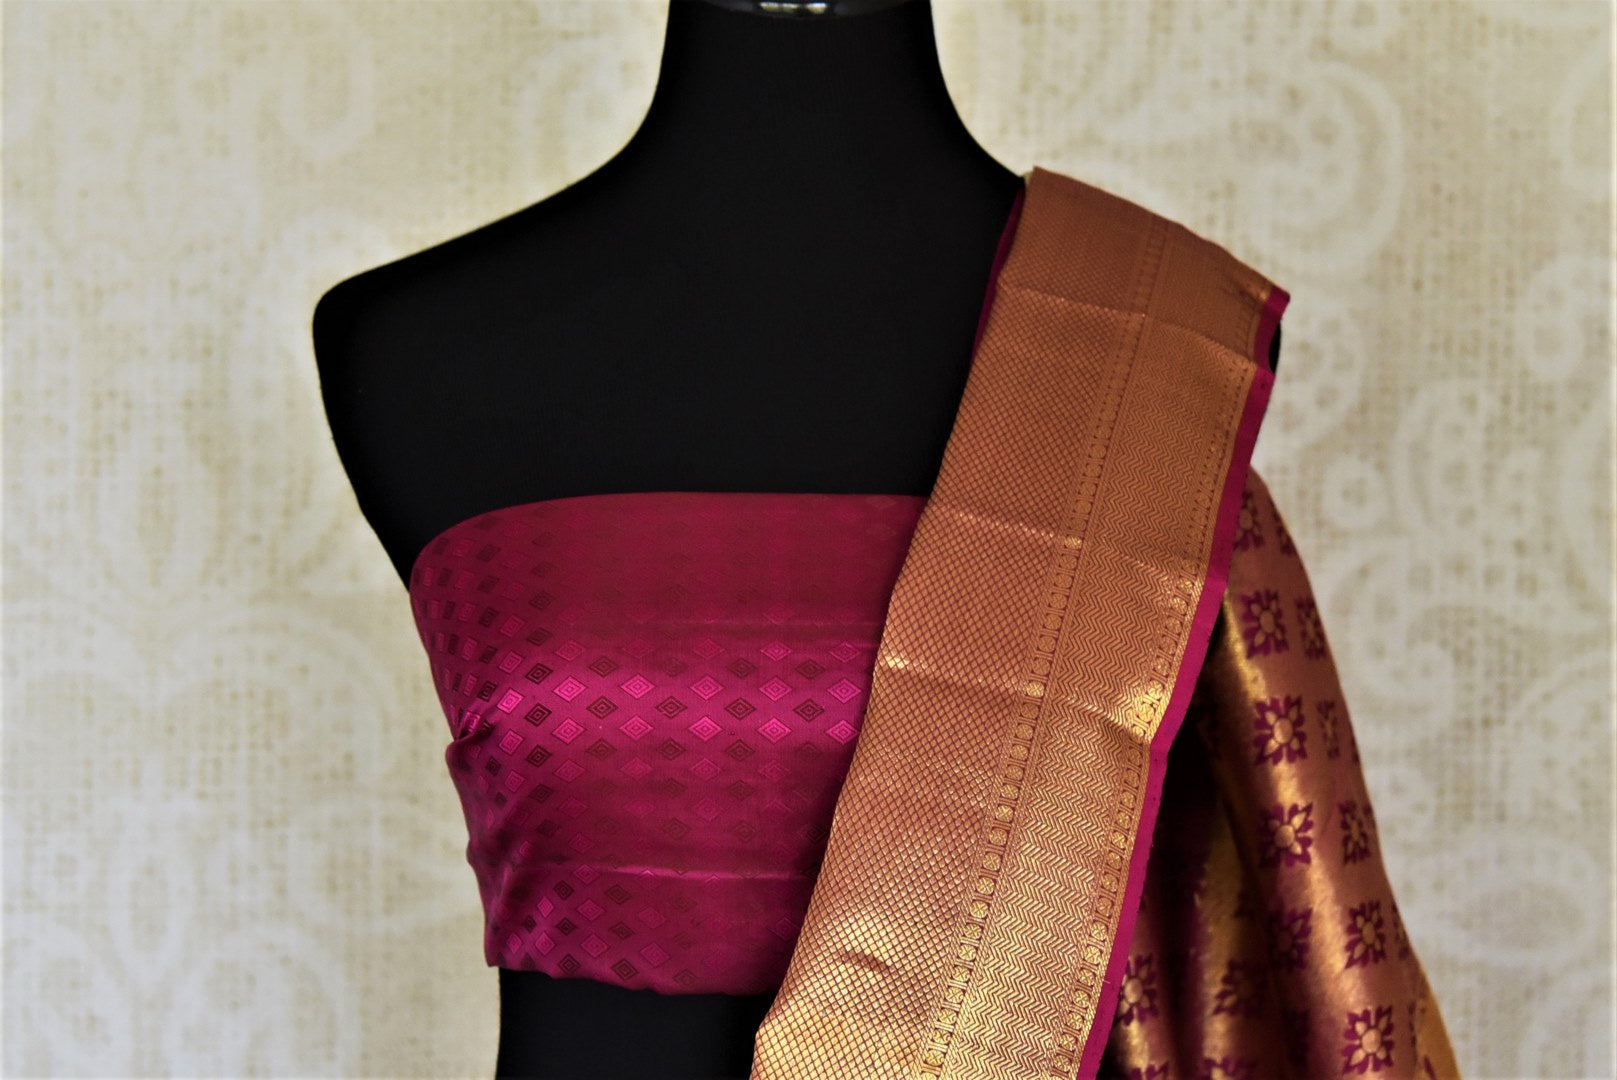 Buy beige Kanjeevaram sari online in USA with silver zari buta and magenta zari border. Get spoiled for choices with a myriad of Kanjivaram silk sarees, wedding sarees from Pure Elegance Indian fashion store in USA.-blouse pallu